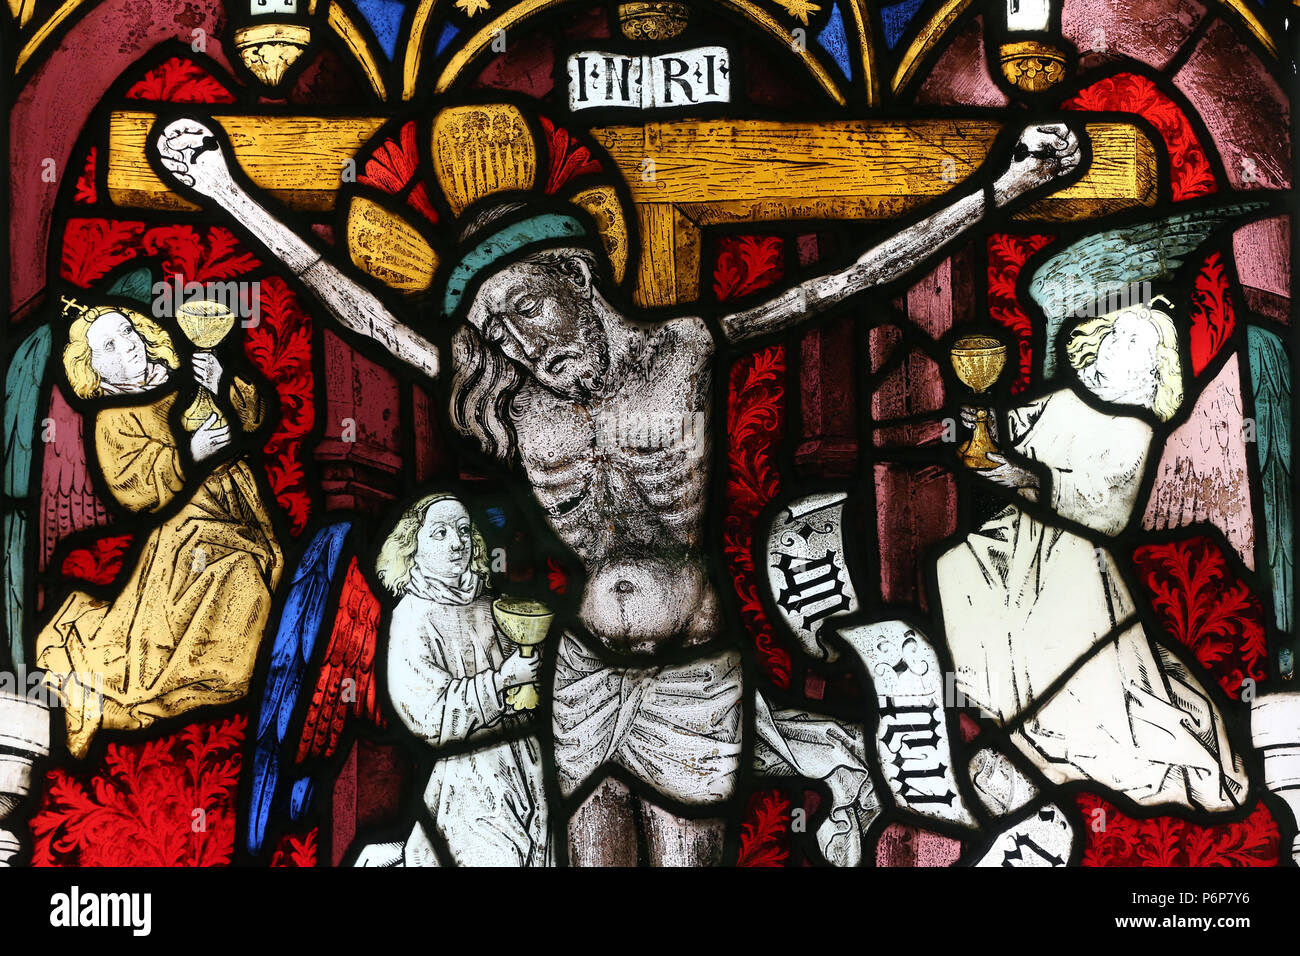 The Museum of History.  Stained glass window.  The crucifixion.  Jesus on the cross.  Detail.  Basel. Switzerland. - Stock Image